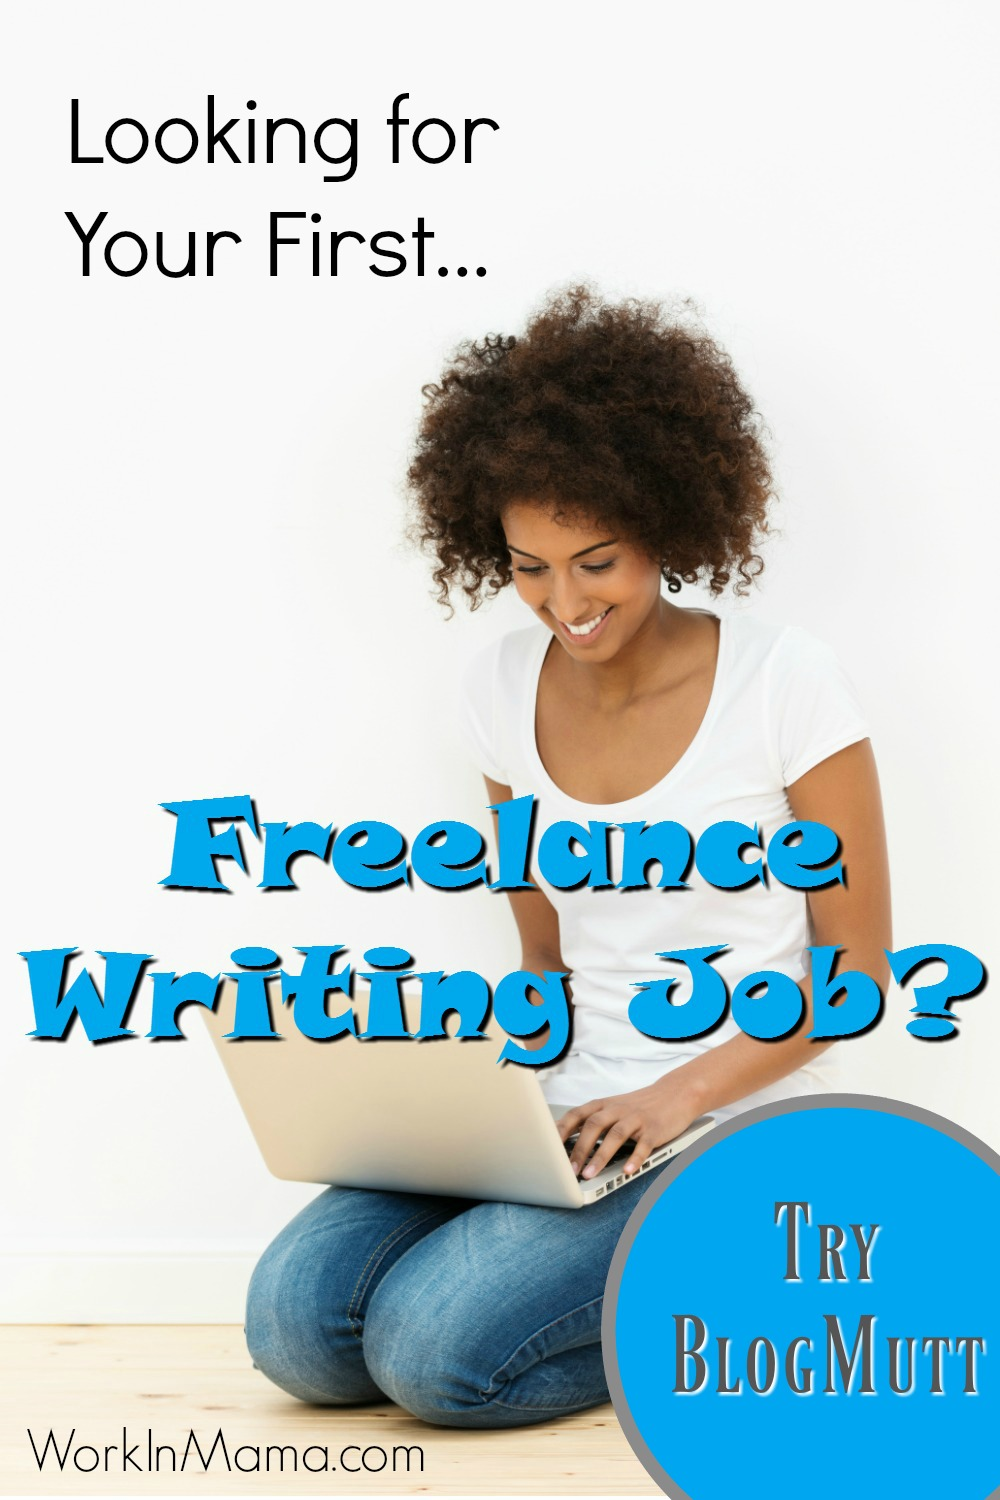 Freelance writing looking for work from home